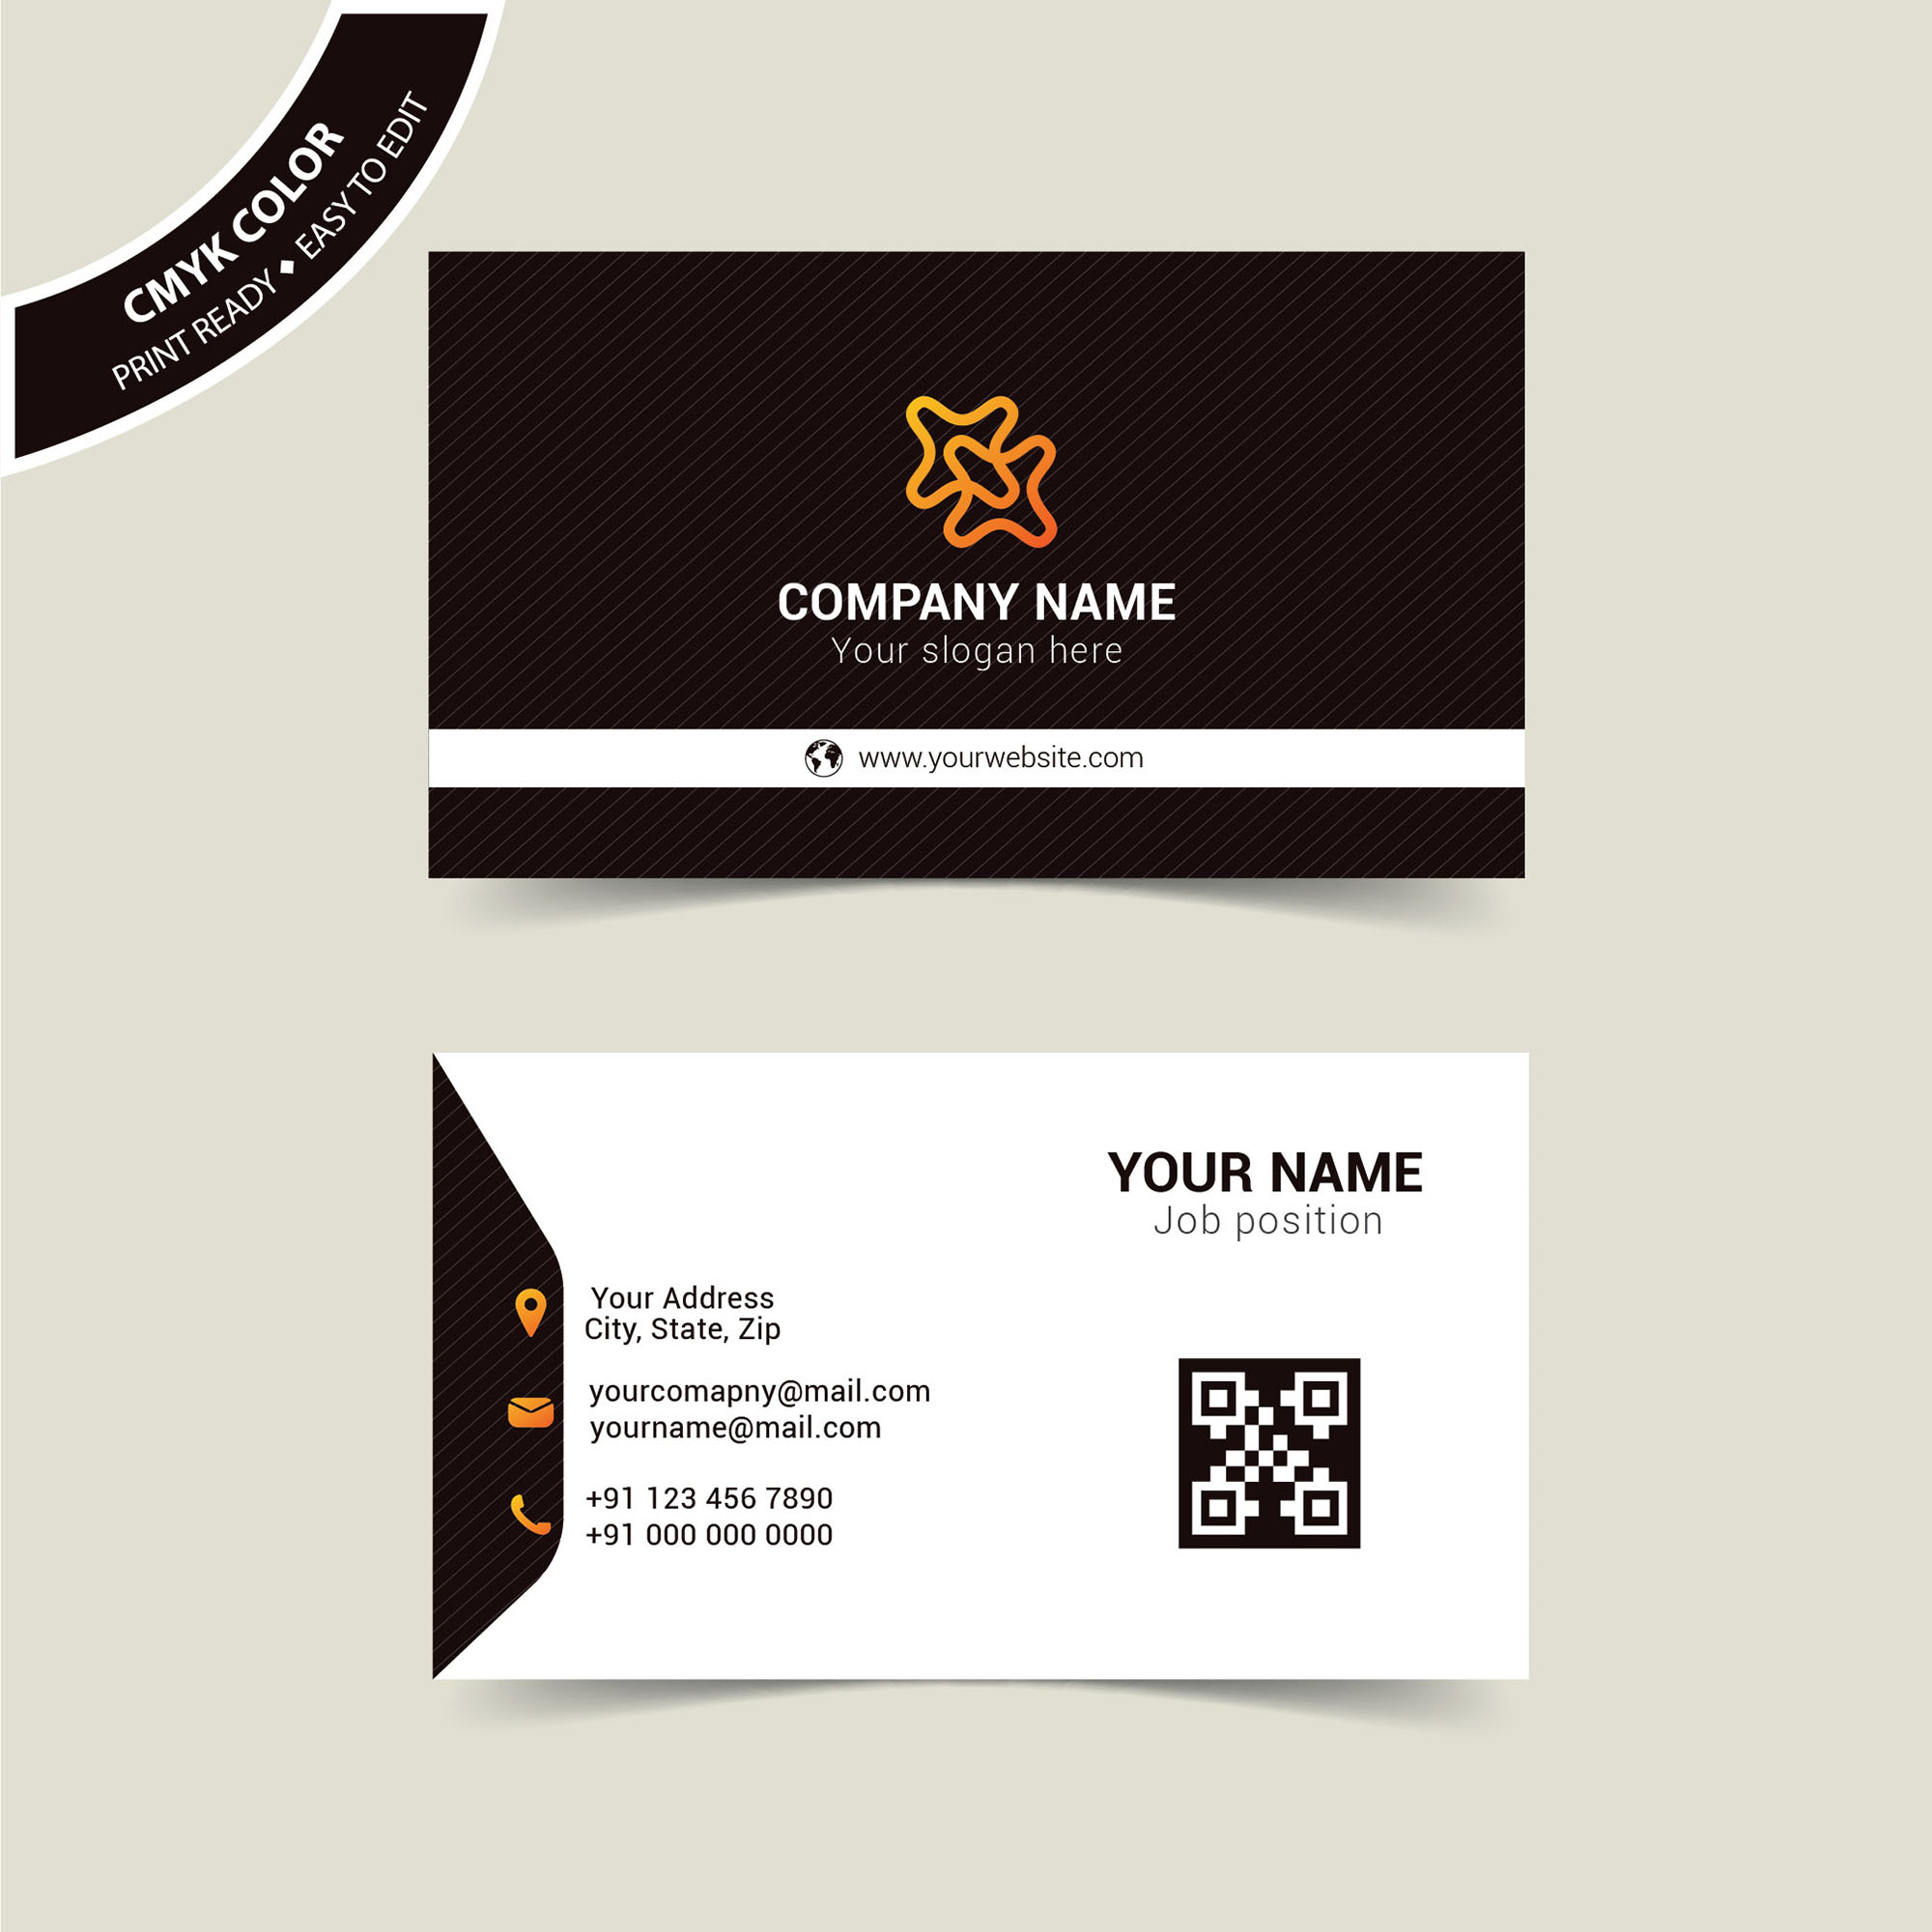 Business Cards Free Vector Download - Print Ready - Wisxi.com